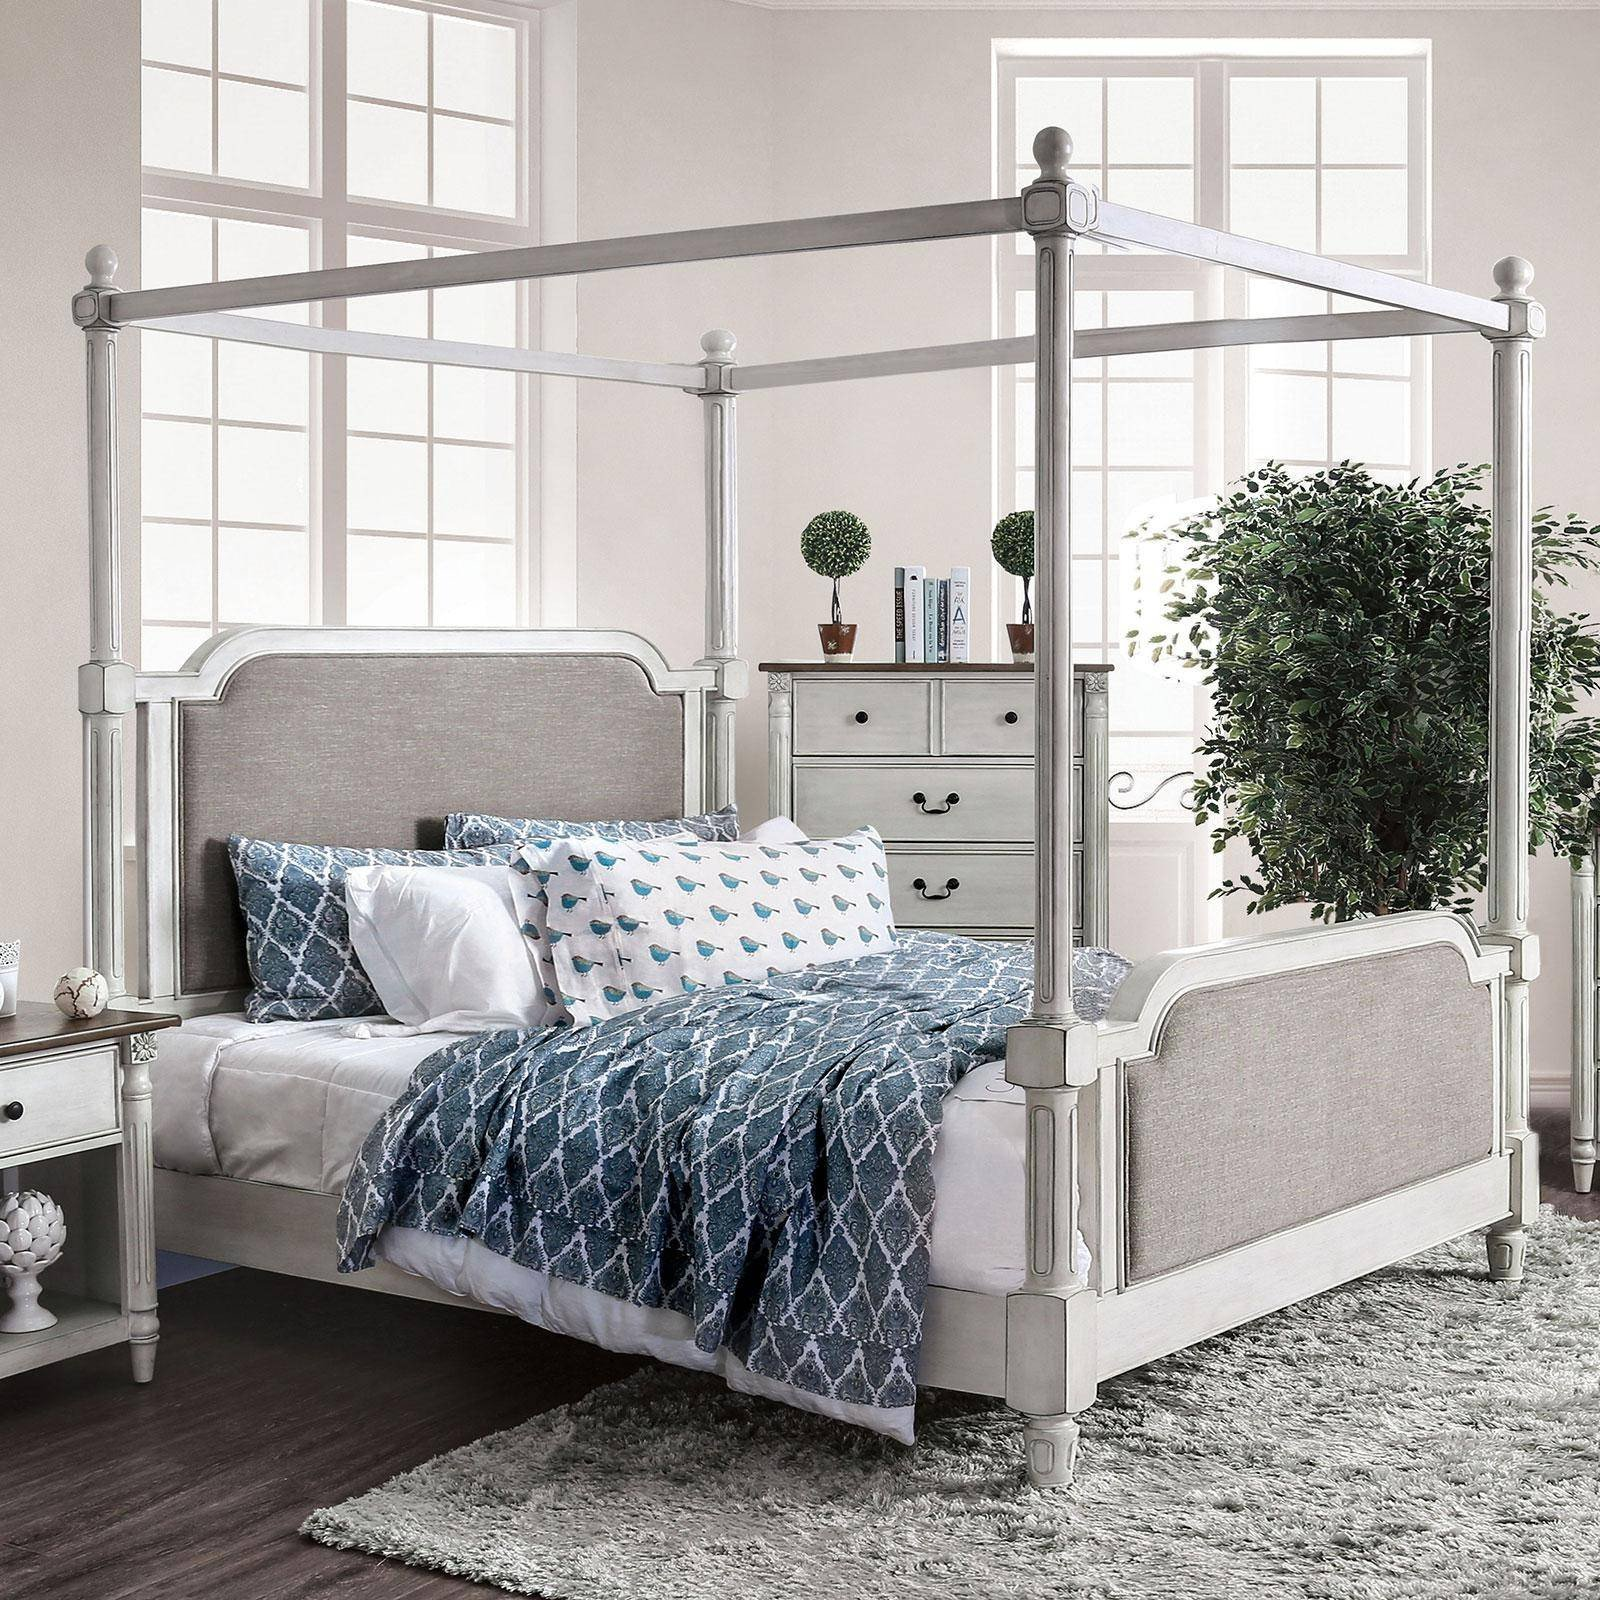 California King Canopy Bedroom Set Elegant Transitional Fabric Upholstery Cal King Canopy Bed In White Lansford Foa Group